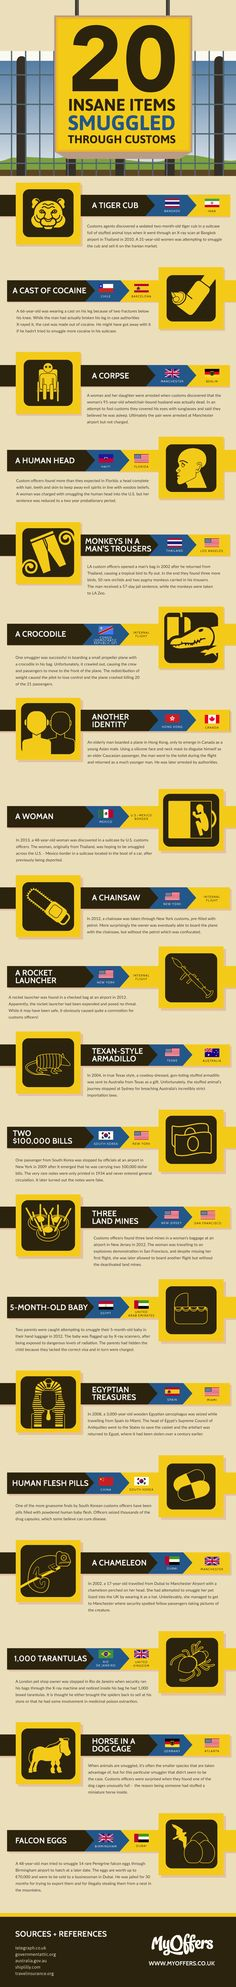 20 Insane Items Smuggled Through Customs Infographic. Topic: Travel, airport, weapon, gun, rifle, crime.